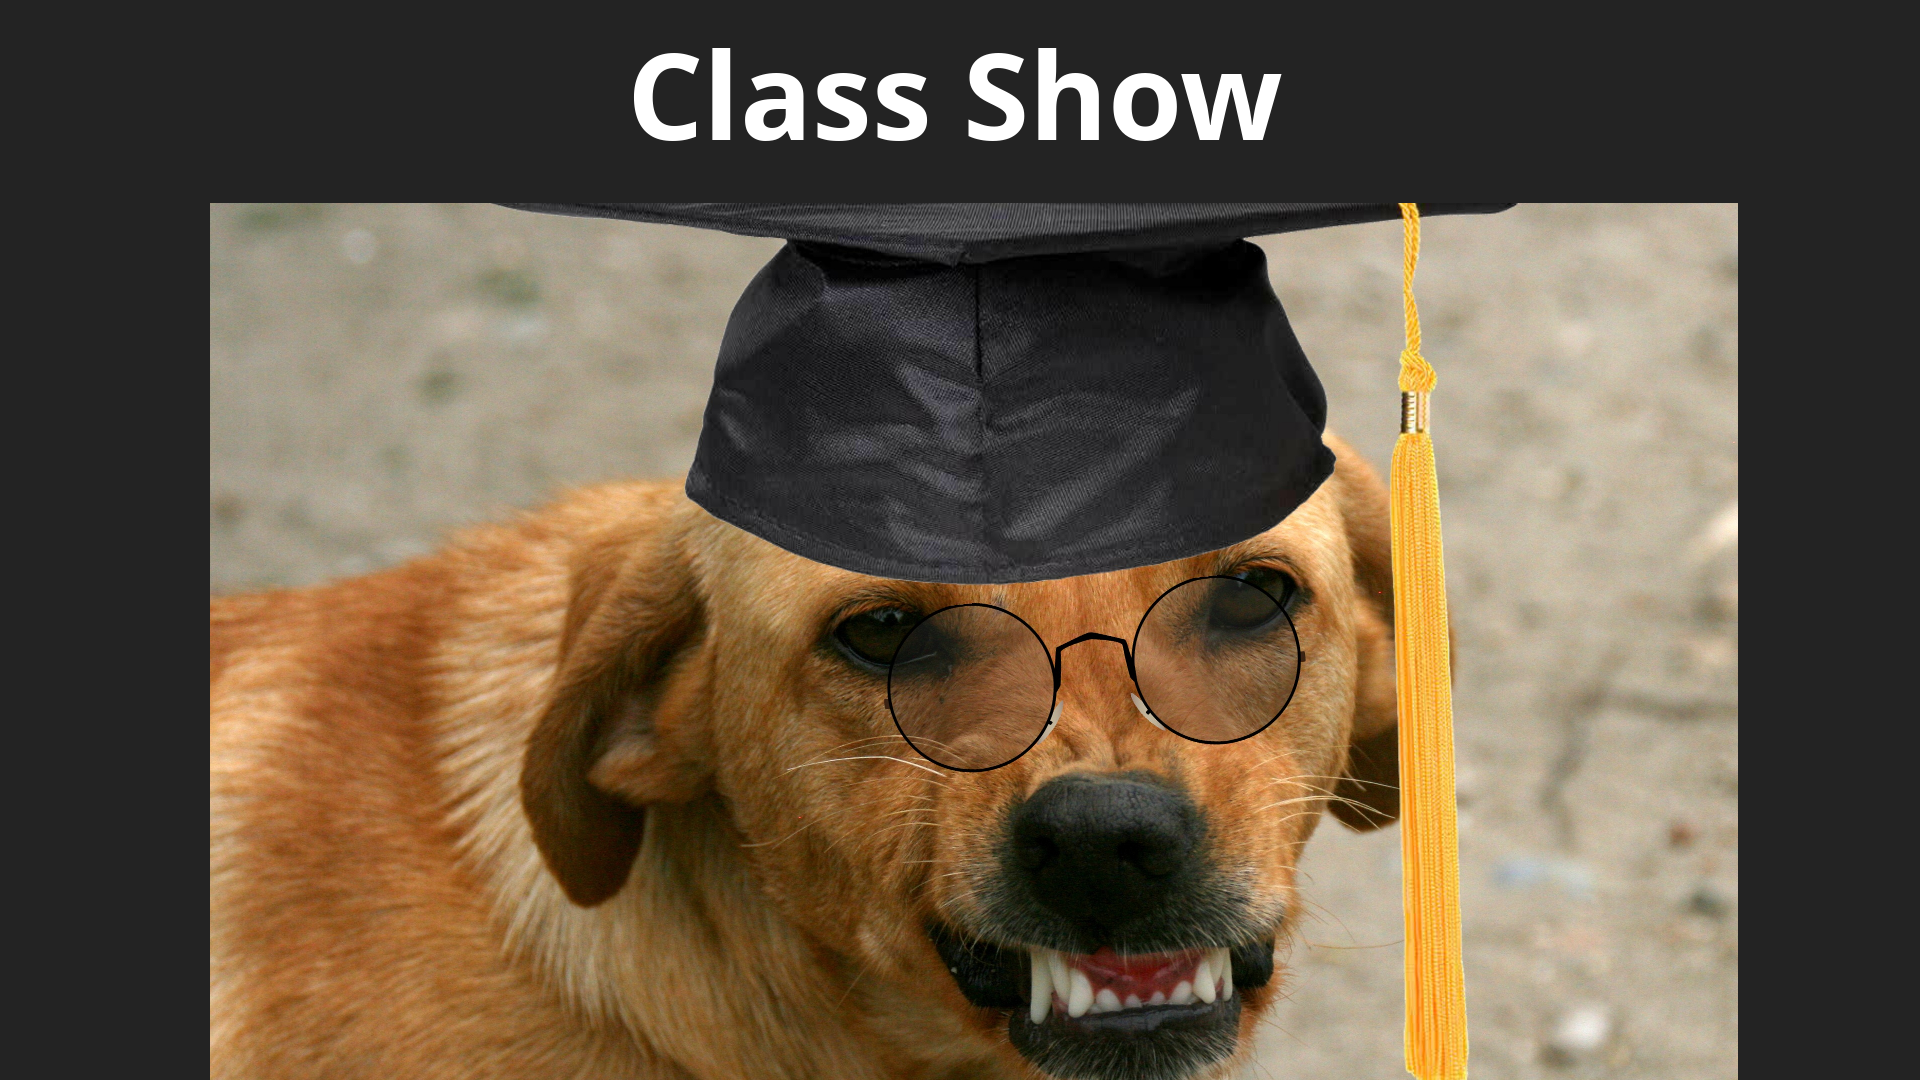 ClassShow_1920.png